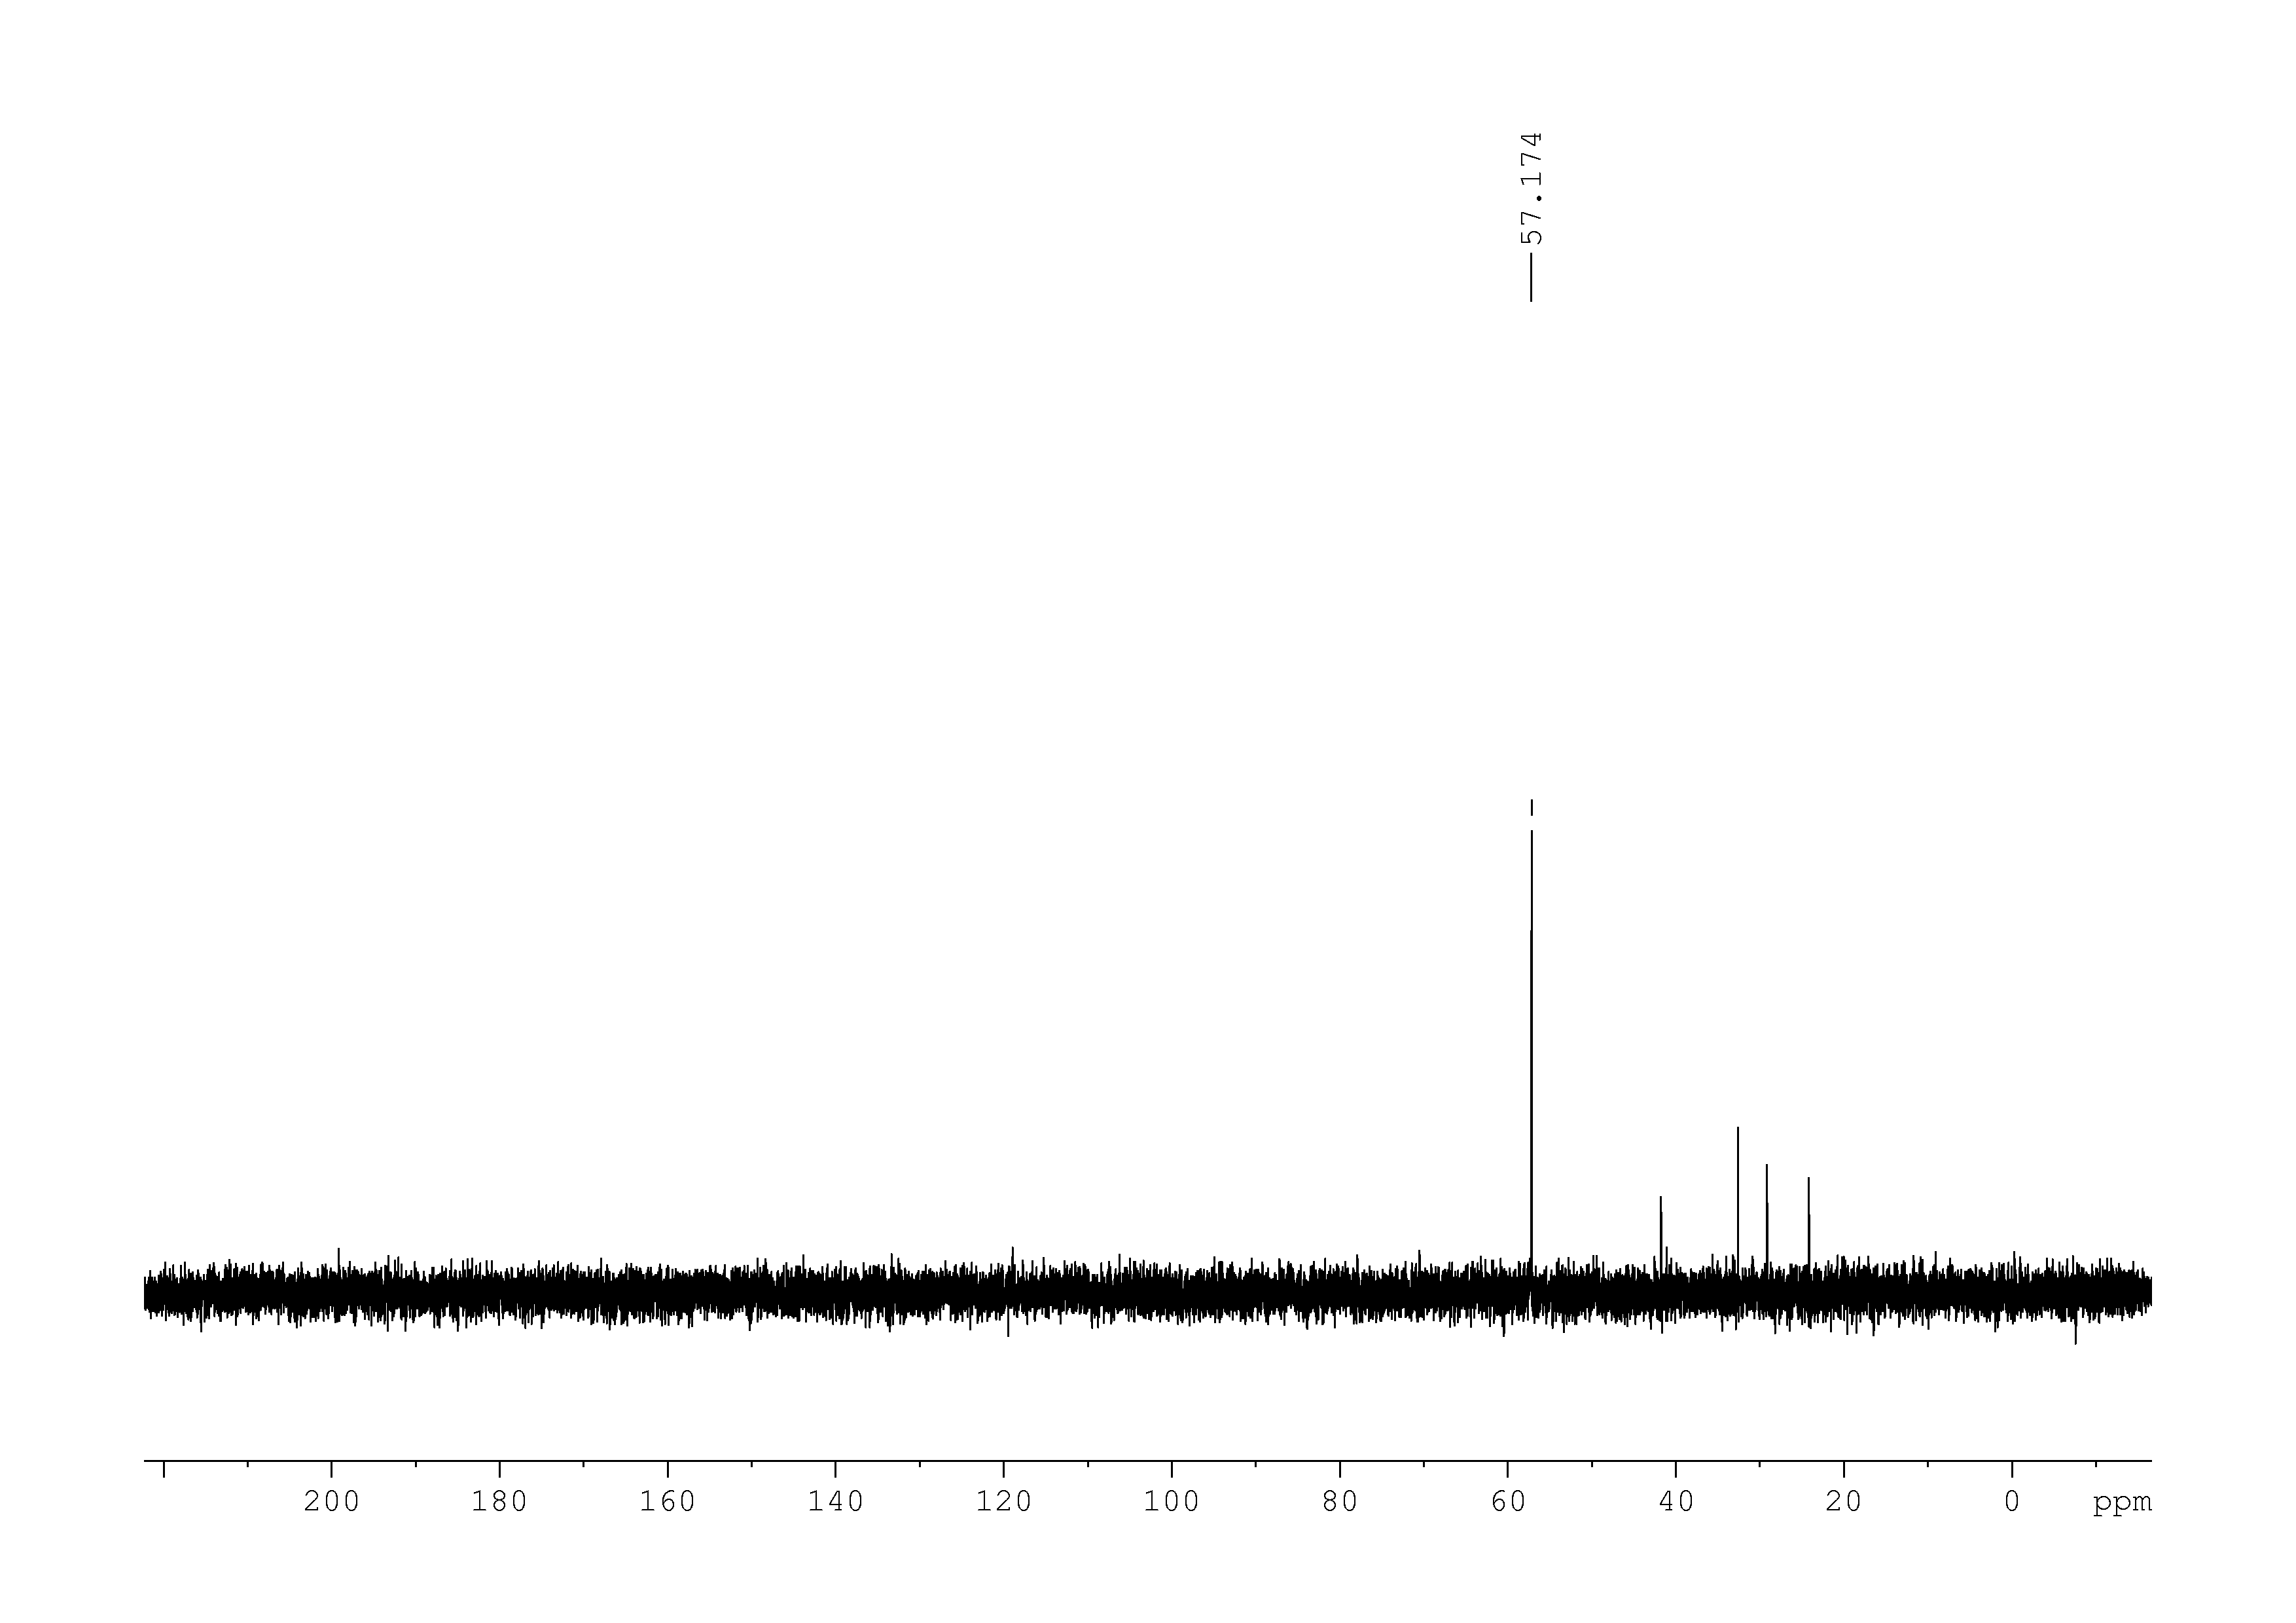 1D DEPT90, 7.4 spectrum for L-Lysine